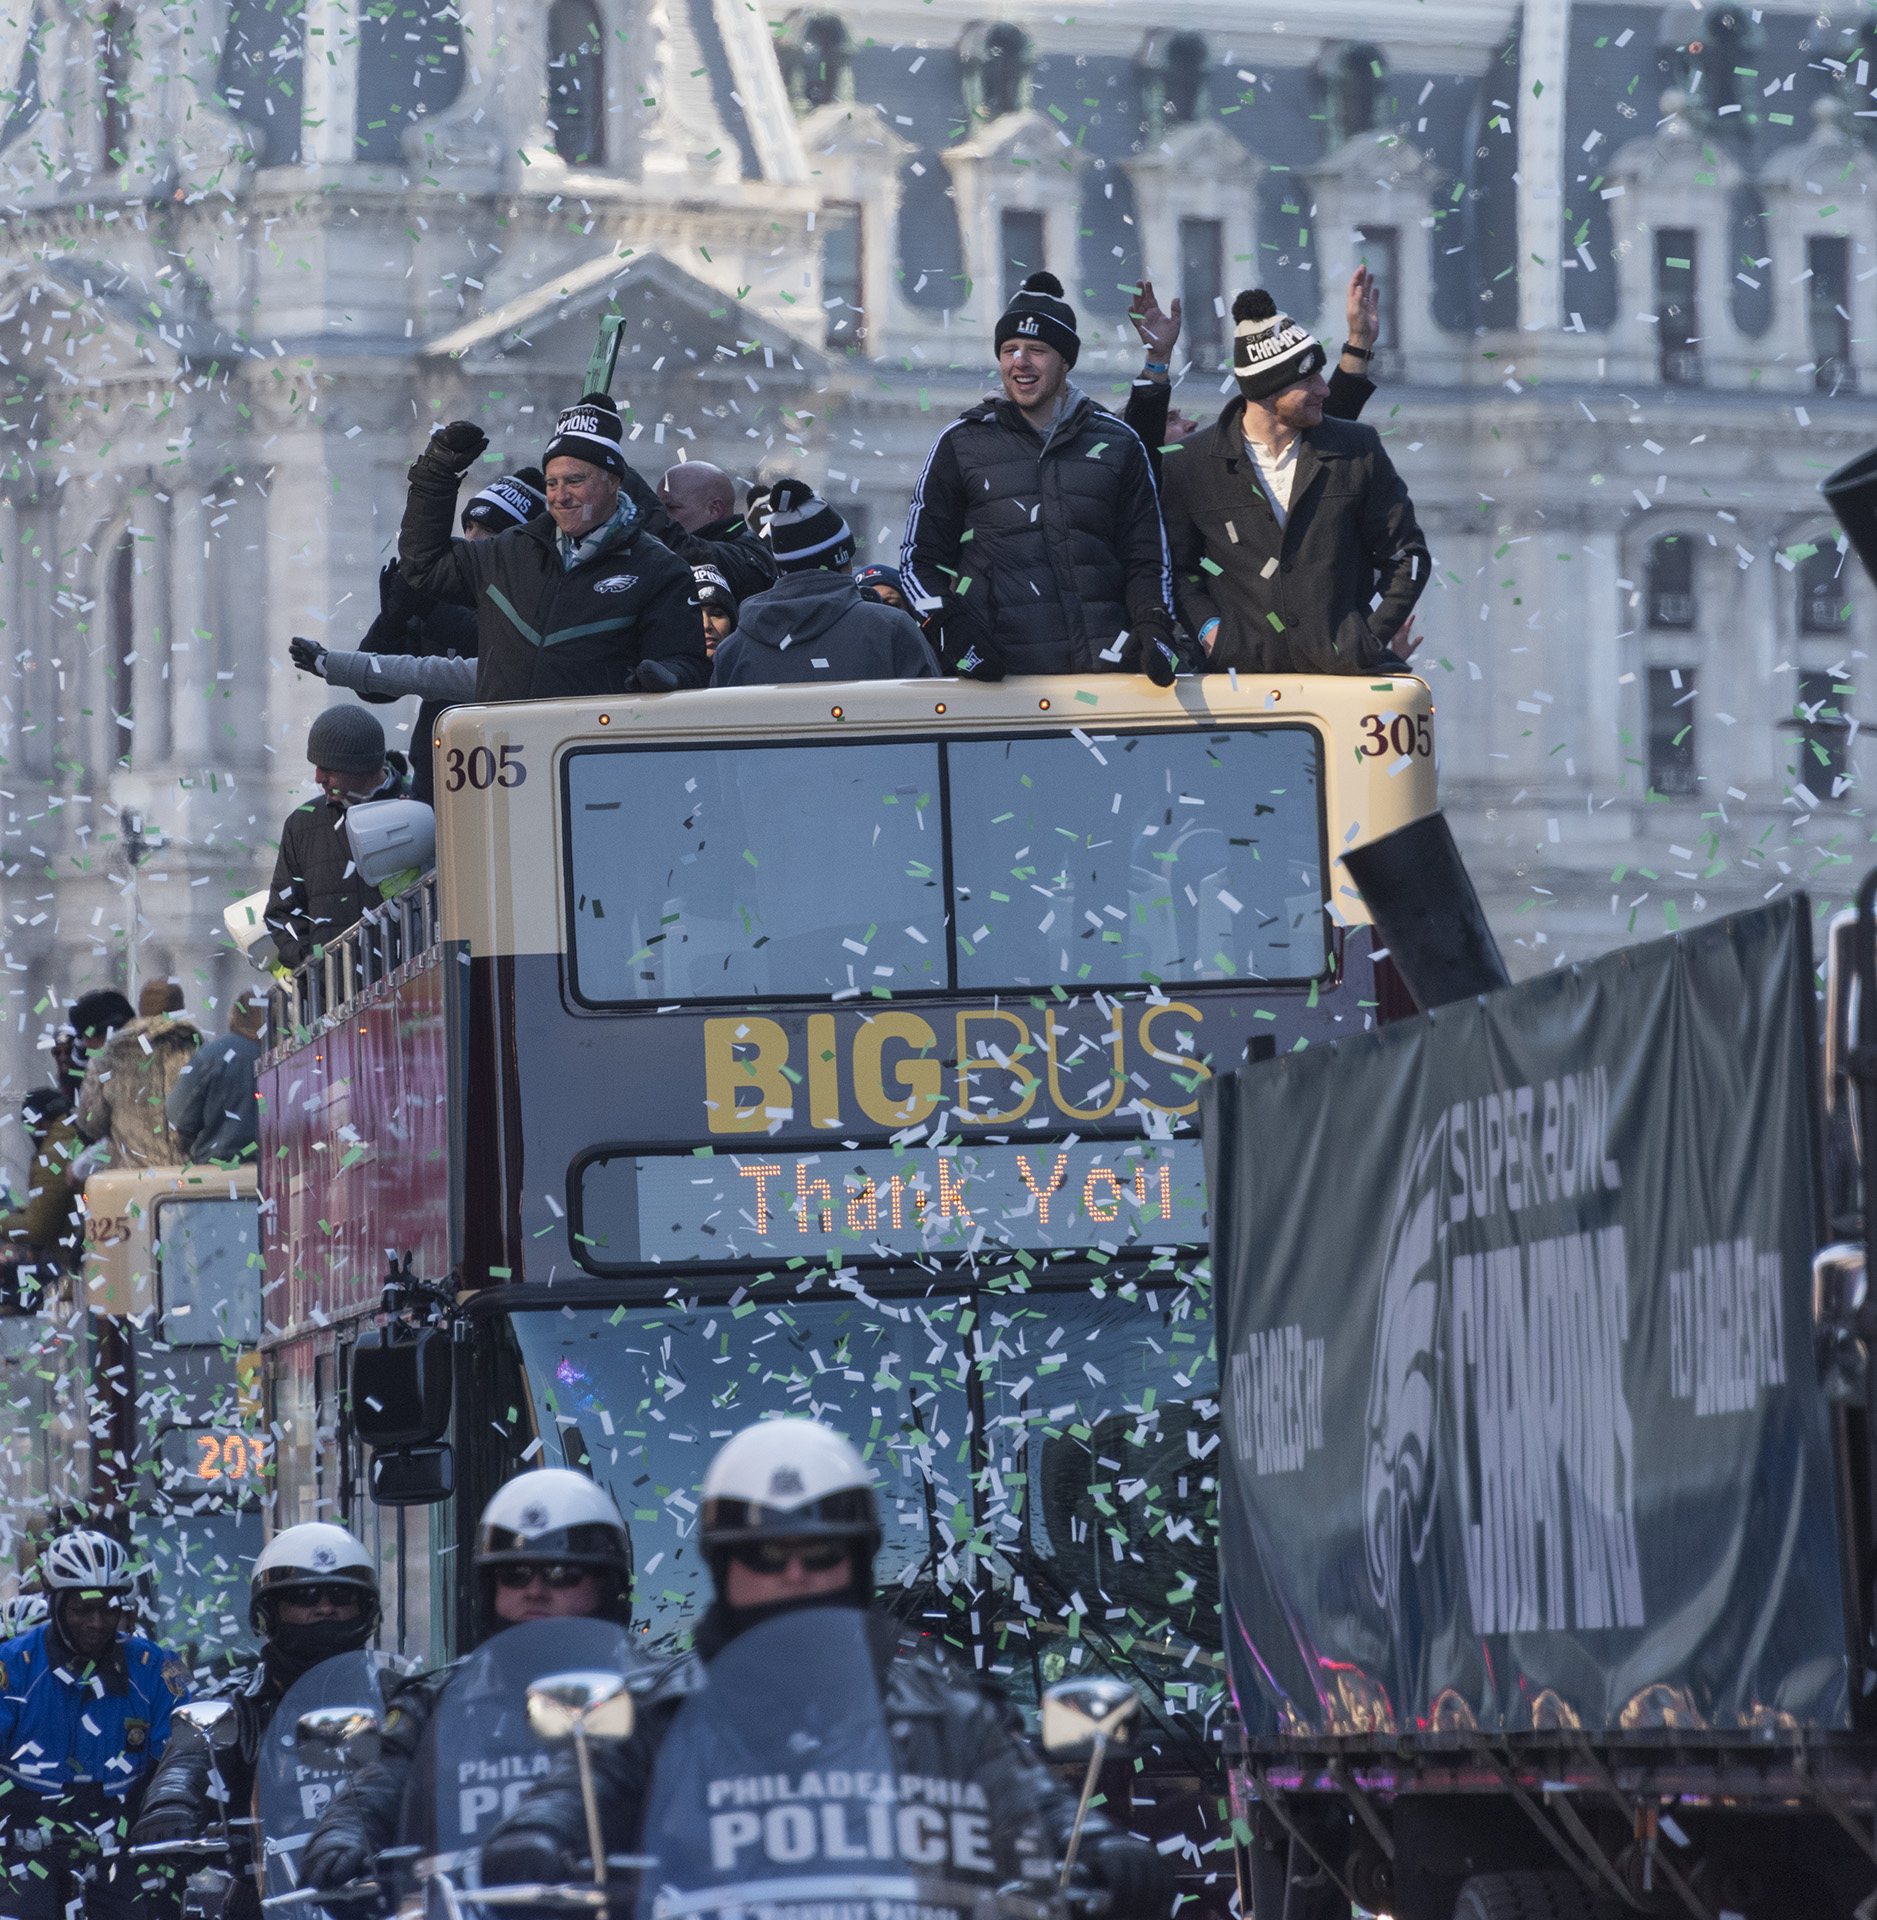 "<div class=""meta image-caption""><div class=""origin-logo origin-image none""><span>none</span></div><span class=""caption-text"">The Philadelphia Eagles celebrate their first Super Bowl championship with a parade and ceremony on February 8, 2018.</span></div>"